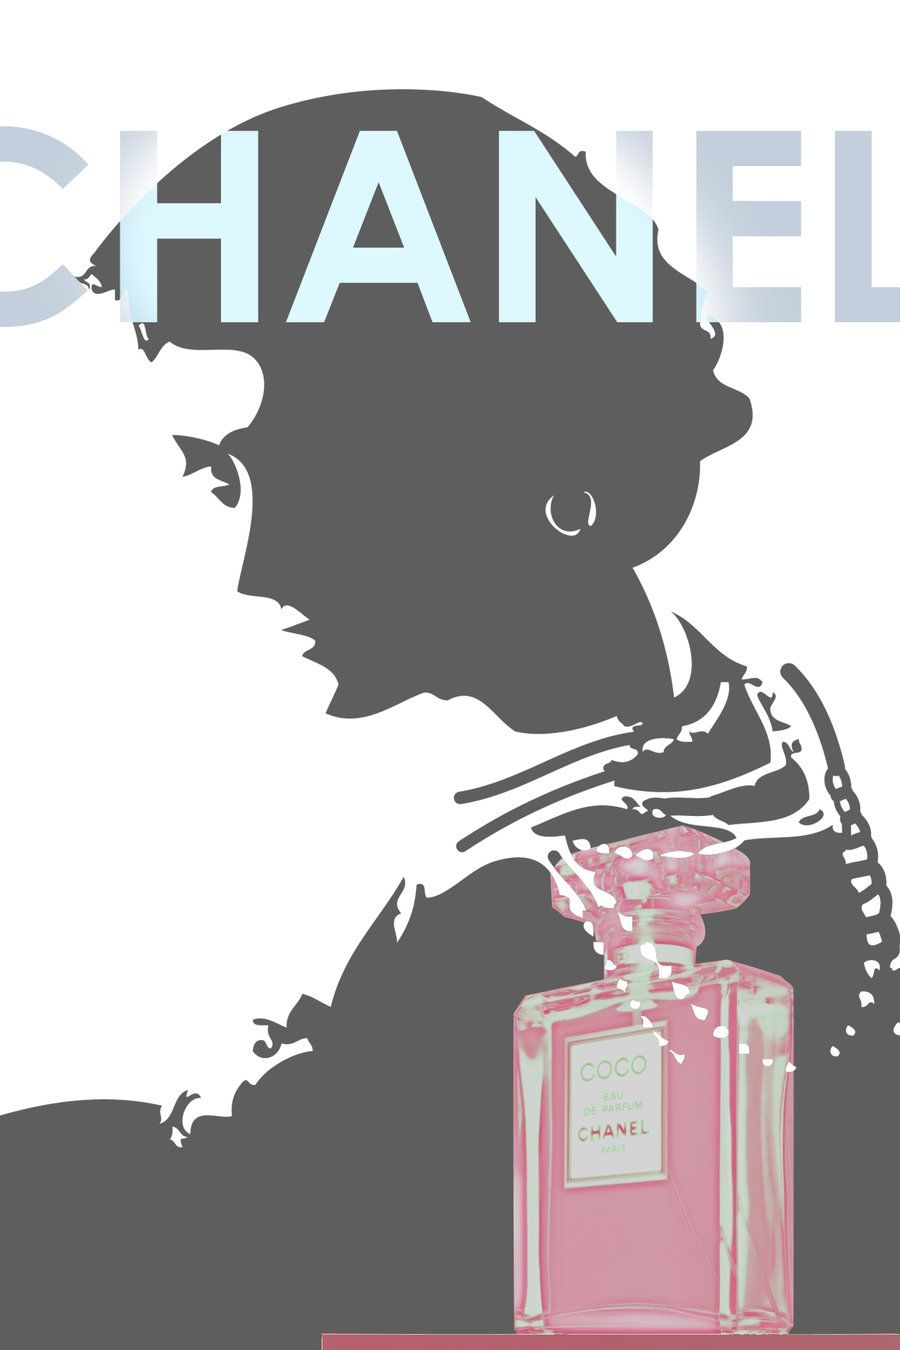 french coco chanel poster vintage - Google Search